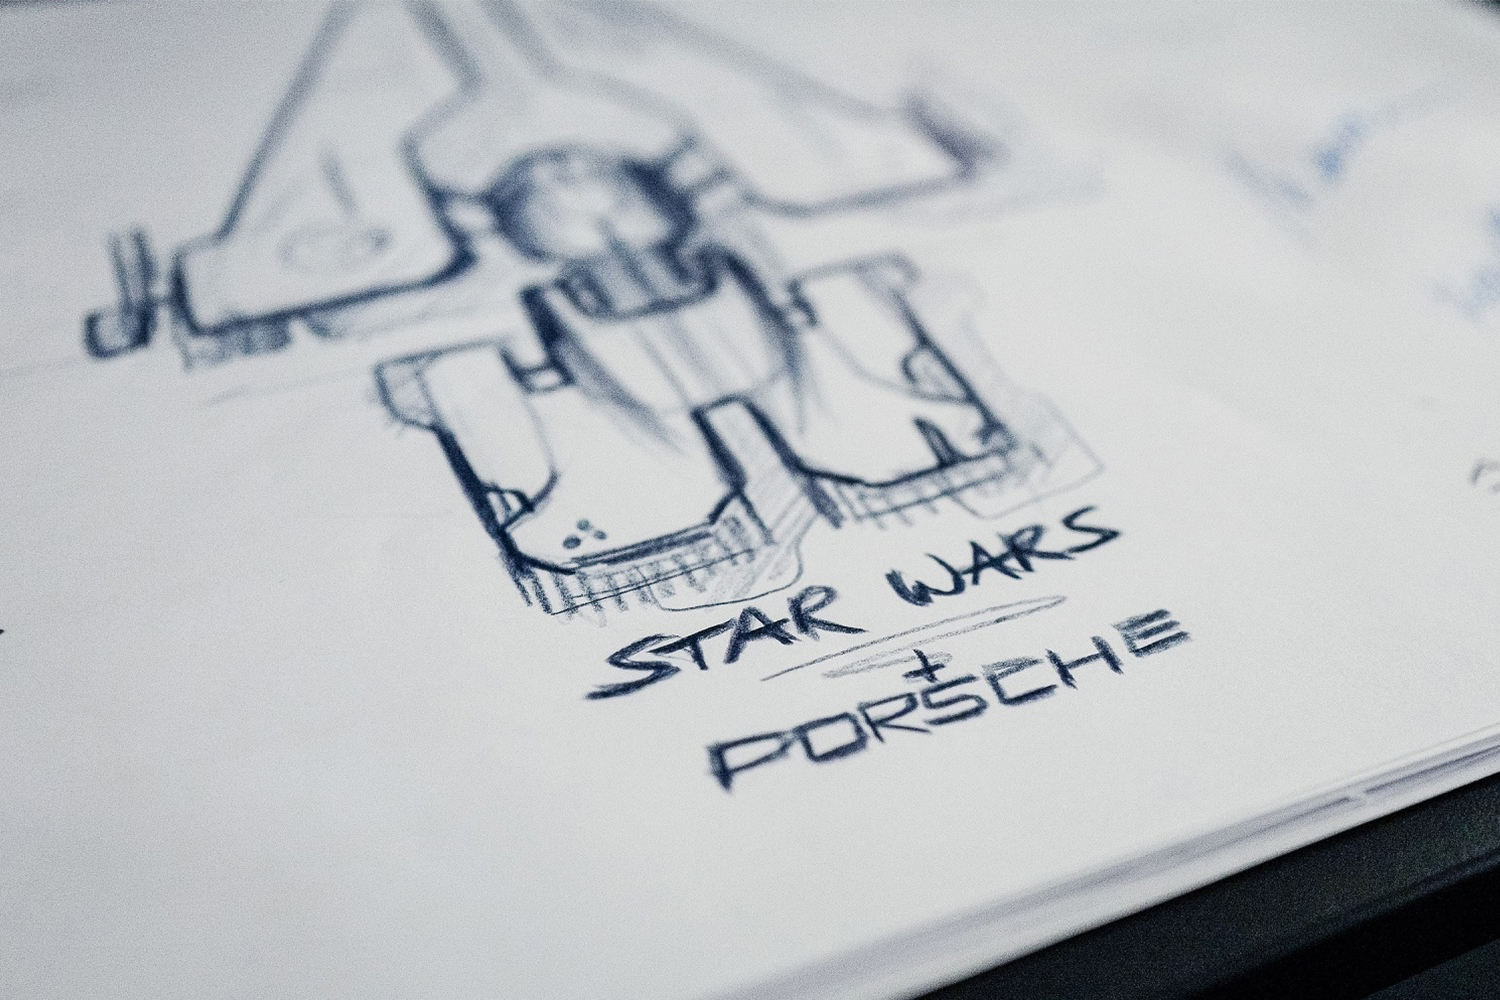 Porsche Star Wars Starship